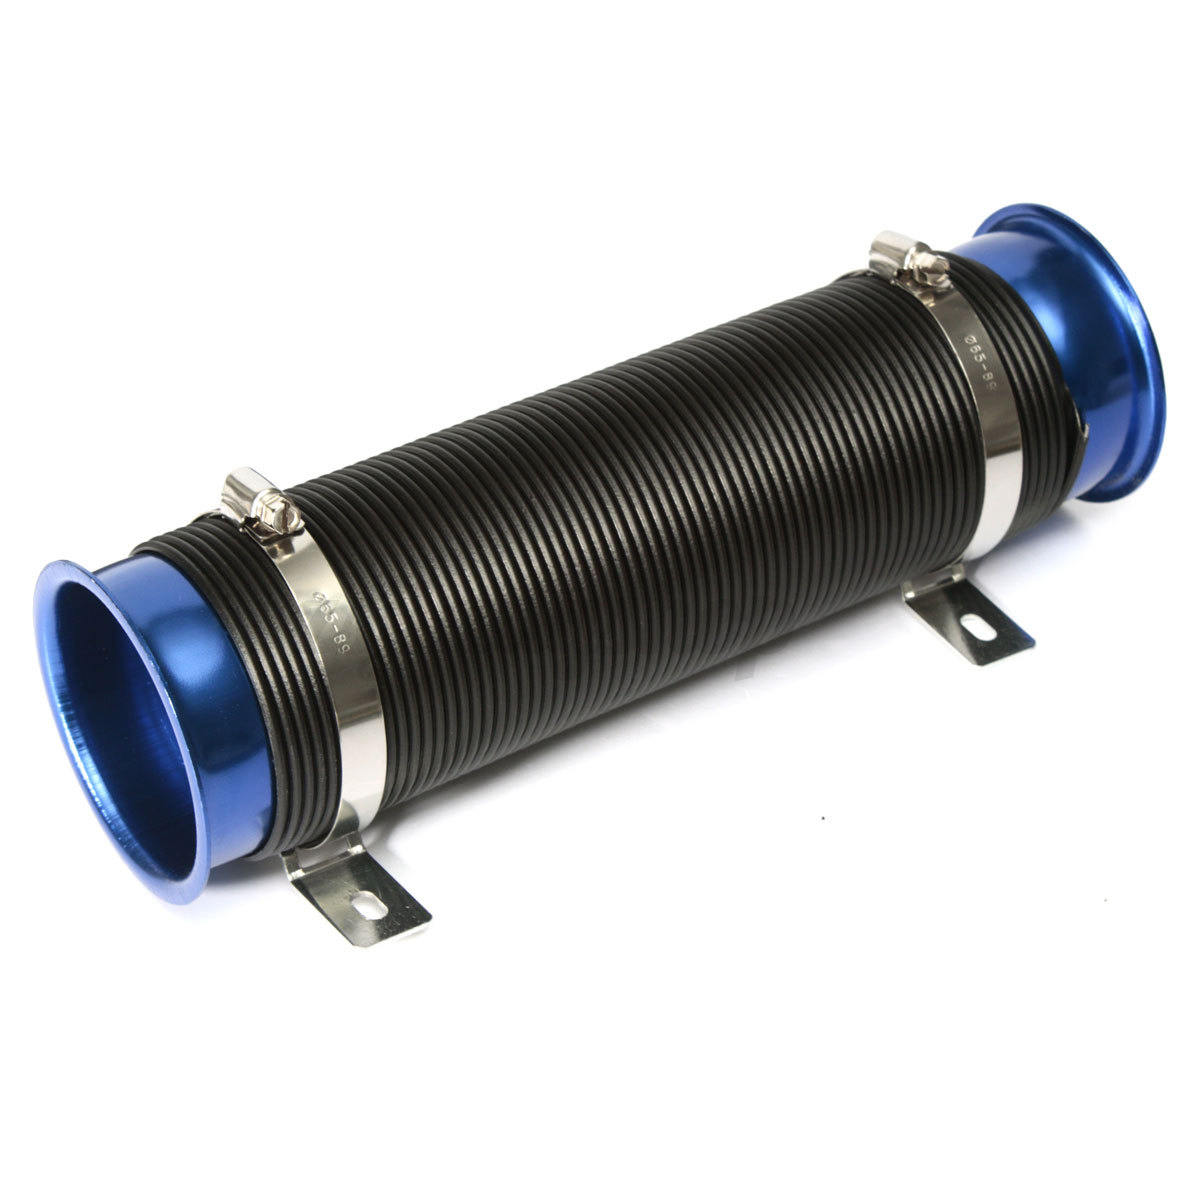 #1C56AF Universal 3'' Flexible Car Tubro Cold Air Intake Tube Pipe  Recommended 907 Air Duct Tubing pics with 1200x1200 px on helpvideos.info - Air Conditioners, Air Coolers and more